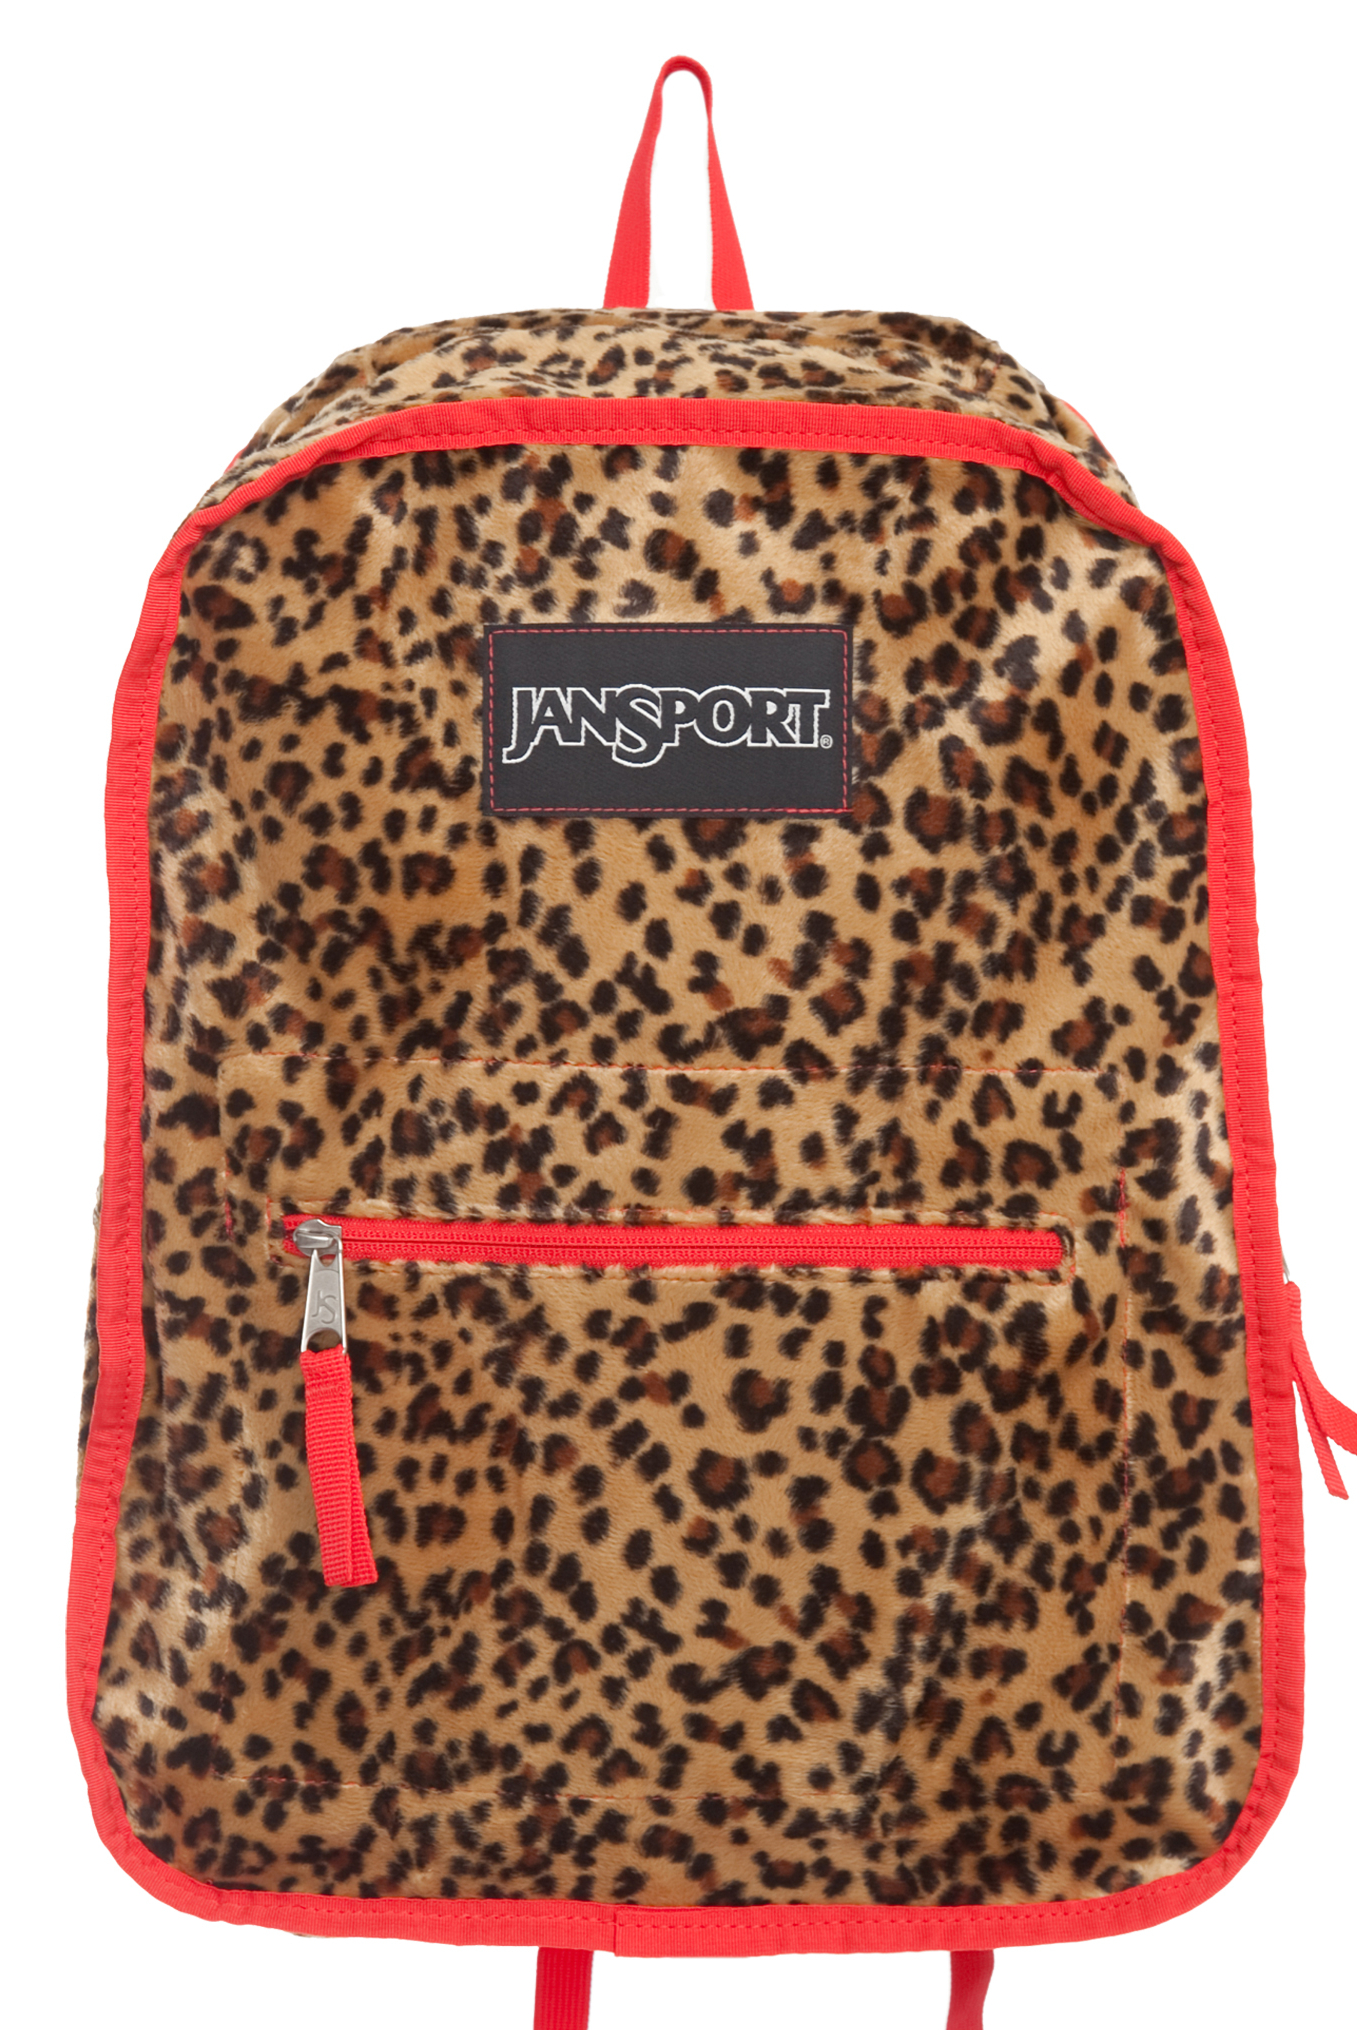 Jansport Polka Dot Backpack h7uVa1zb